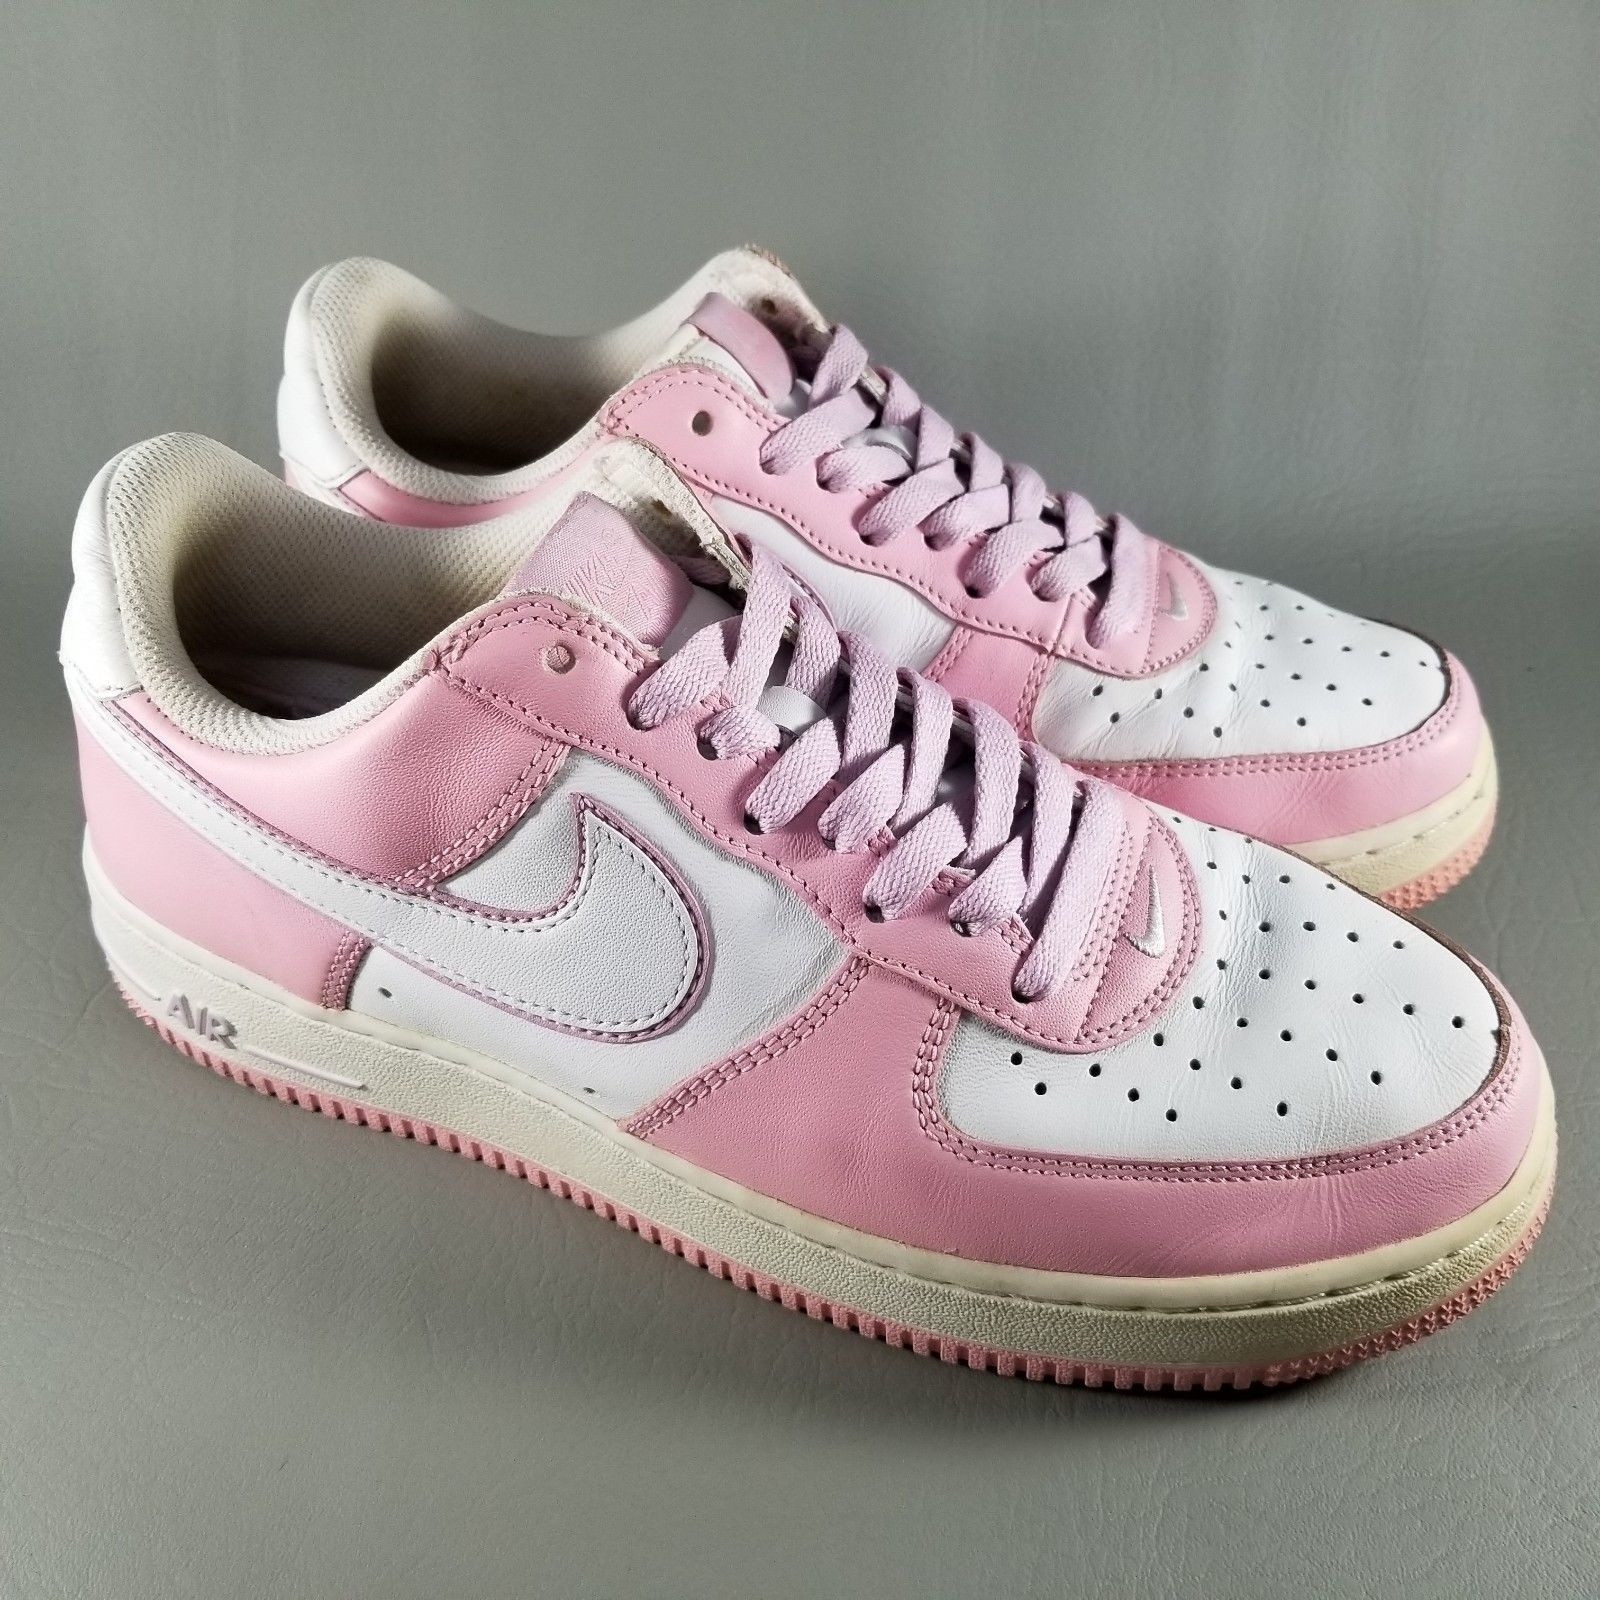 Nike - Priority Low GS - Color: Rosa - Size: 38.5 25fHy7